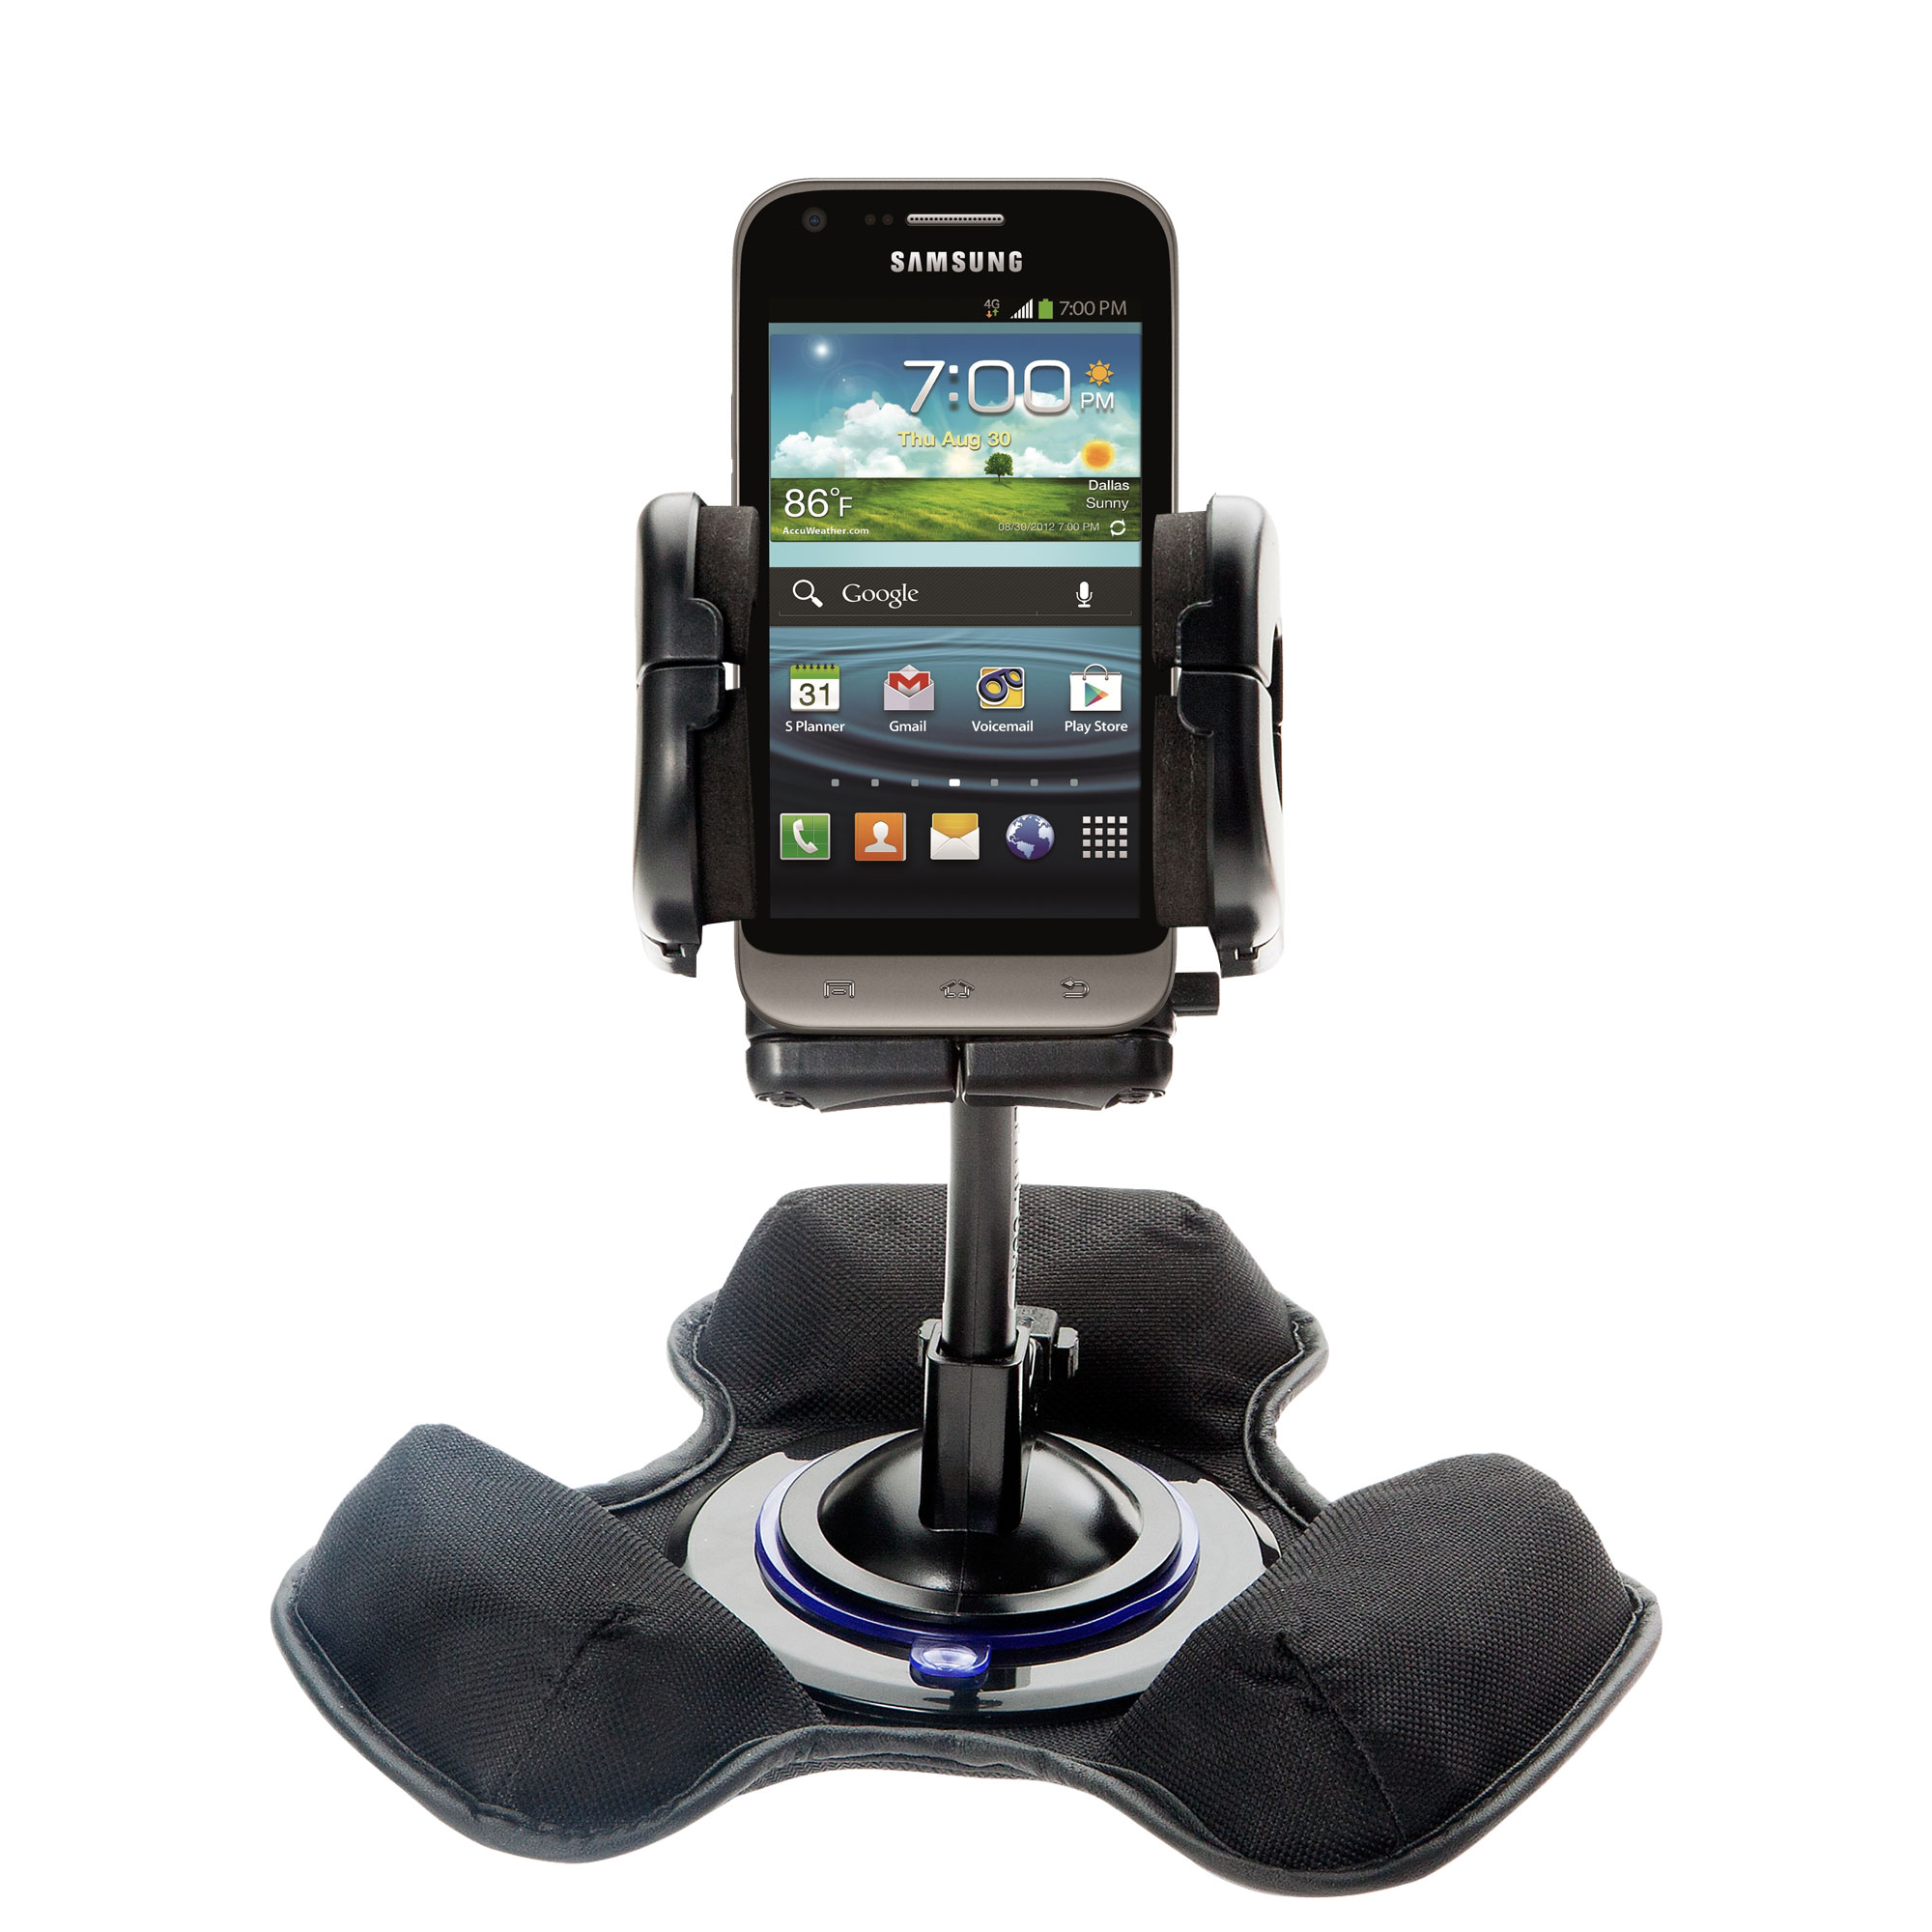 Car / Truck Vehicle Holder Mounting System for Samsung Galaxy Victory Includes Unique Flexible Windshield Suction and Universal Dashboard Mount Options